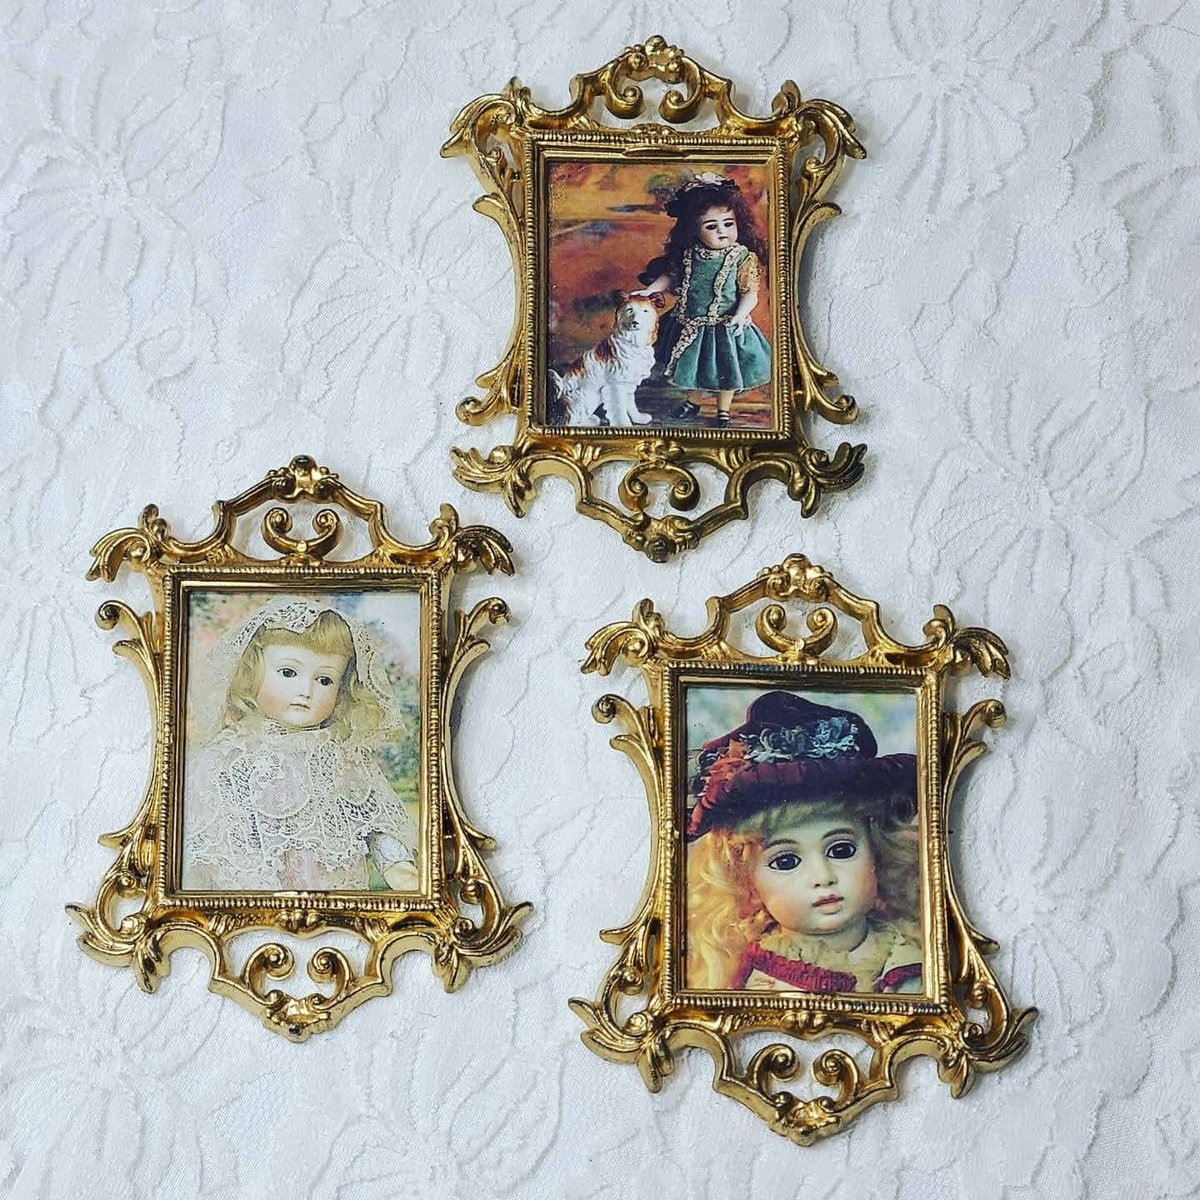 "Excited to share the latest addition to my #etsy shop: Set of Three Miniature Doll Sized Framed Antique Doll Pictures ~ Ornate Gold Hanging Picture Frames 4"" x 3"" ~ Hong Kong https://t.co/n6Pgis4EqR #gold #painting #wall #plastic #bedroom #victorian #vintage #miniature https://t.co/RNP3BN9Zo8"